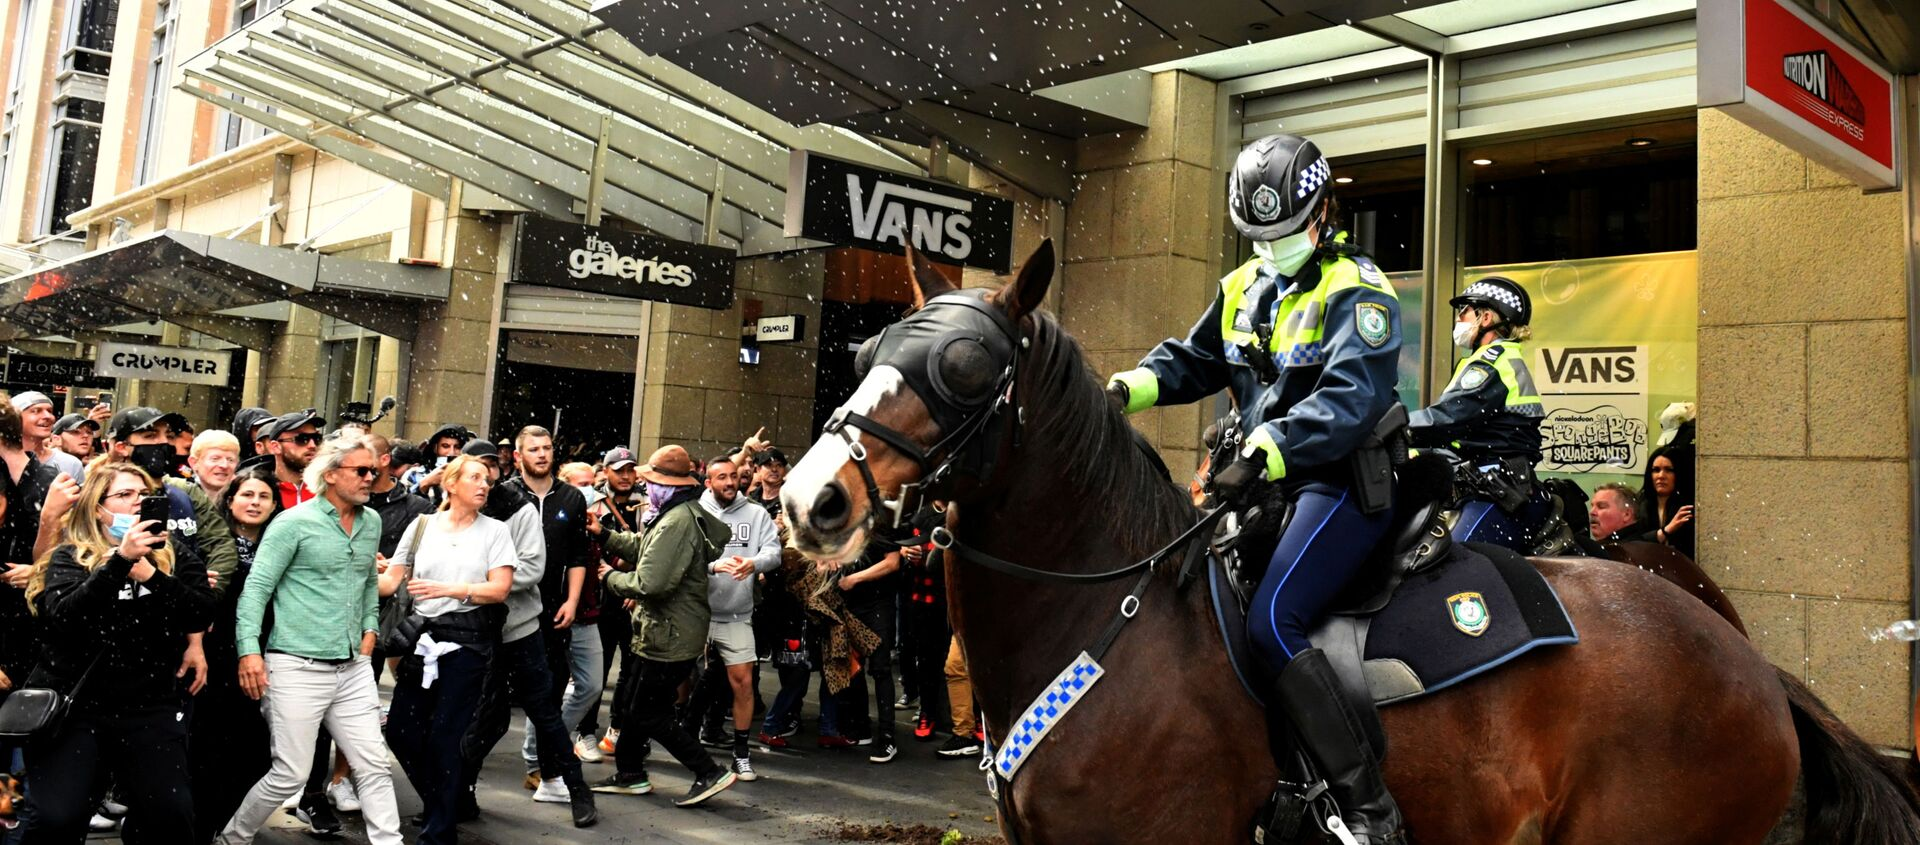 Protesters throw plastic bottles and pot plants at mounted police in the city centre during an anti-lockdown rally as an outbreak of the coronavirus disease (COVID-19) affects Sydney, Australia, July 24, 2021.   - Sputnik International, 1920, 21.08.2021